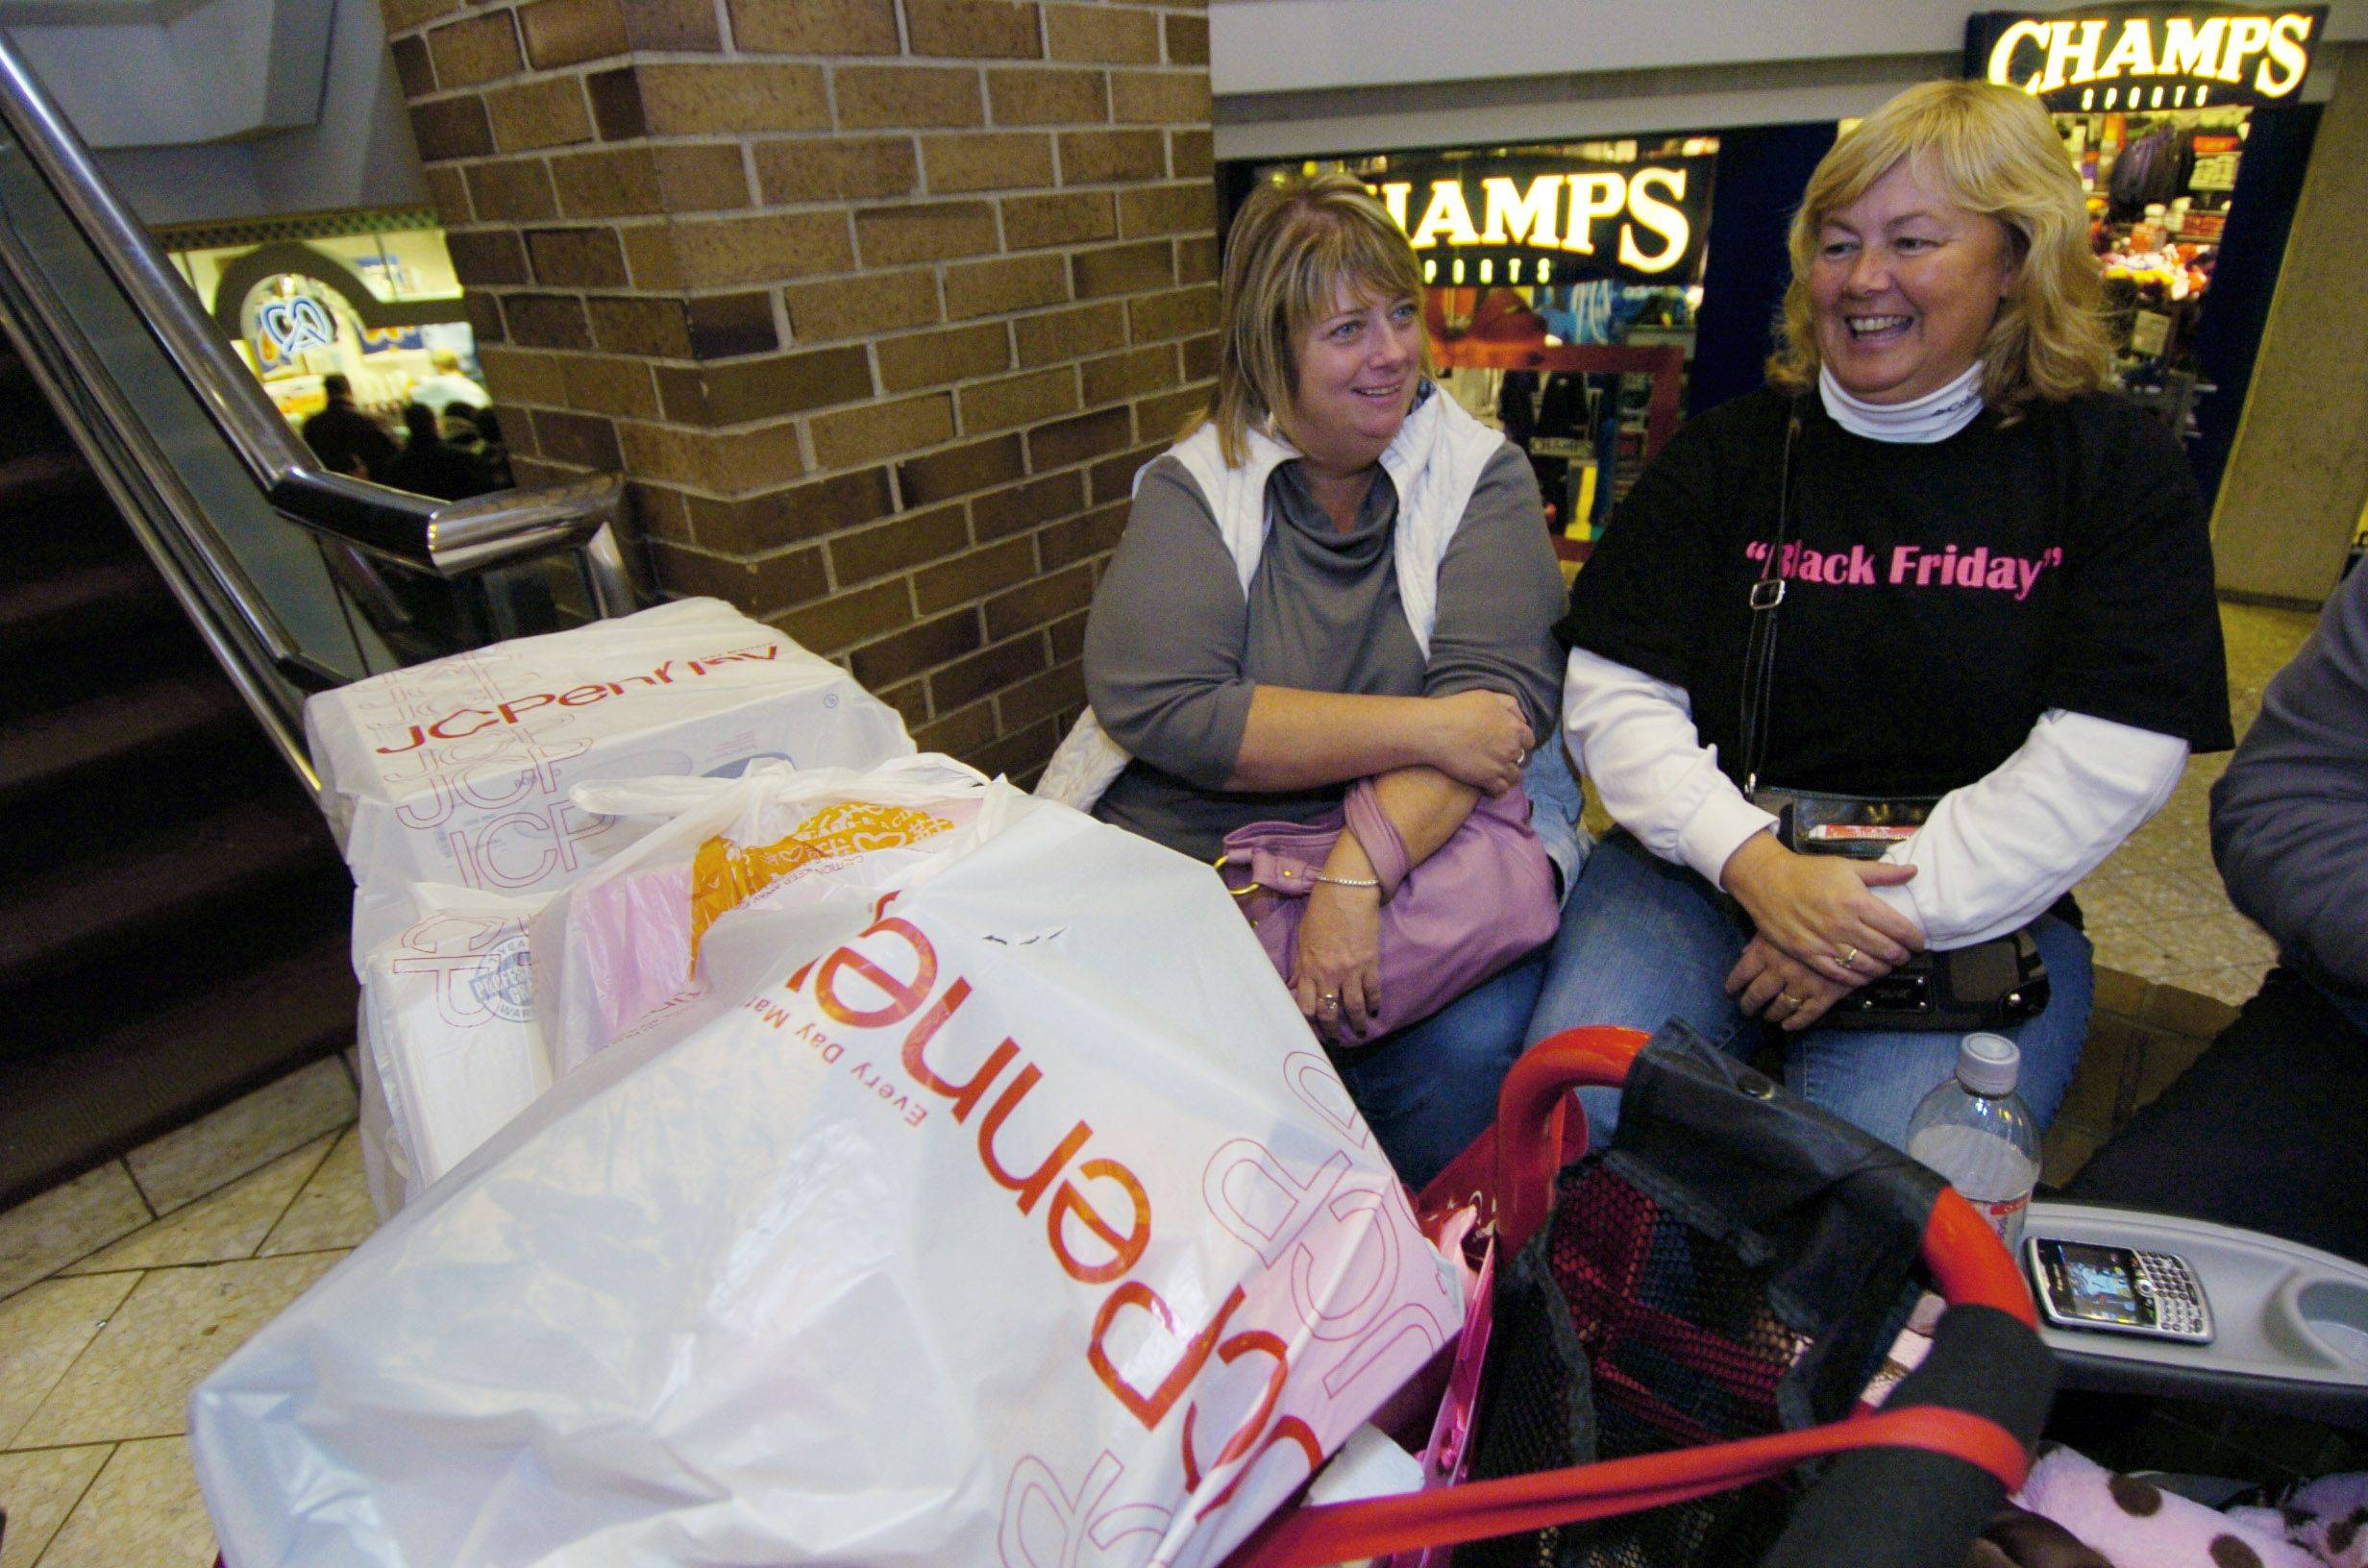 Patty McElroy of Chicago, left, and Mary Nessling of Rosemont take a break while shopping on black Friday at Woodfield mall.